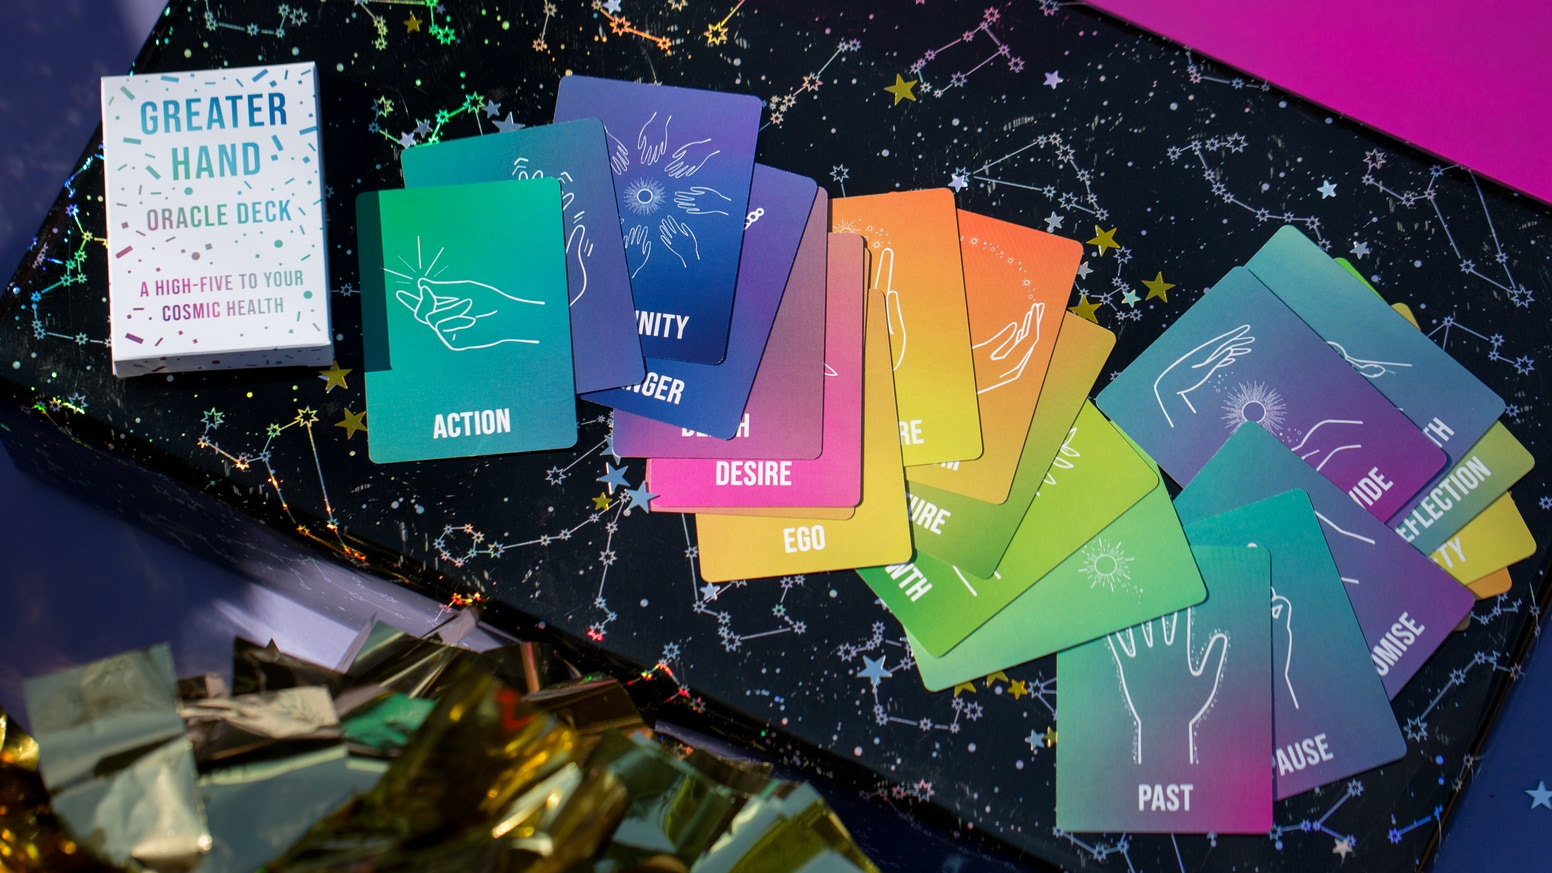 25 cards that represent a theme word with illustrated hands, set against a colorful background. Your cosmic health check-in awaits...